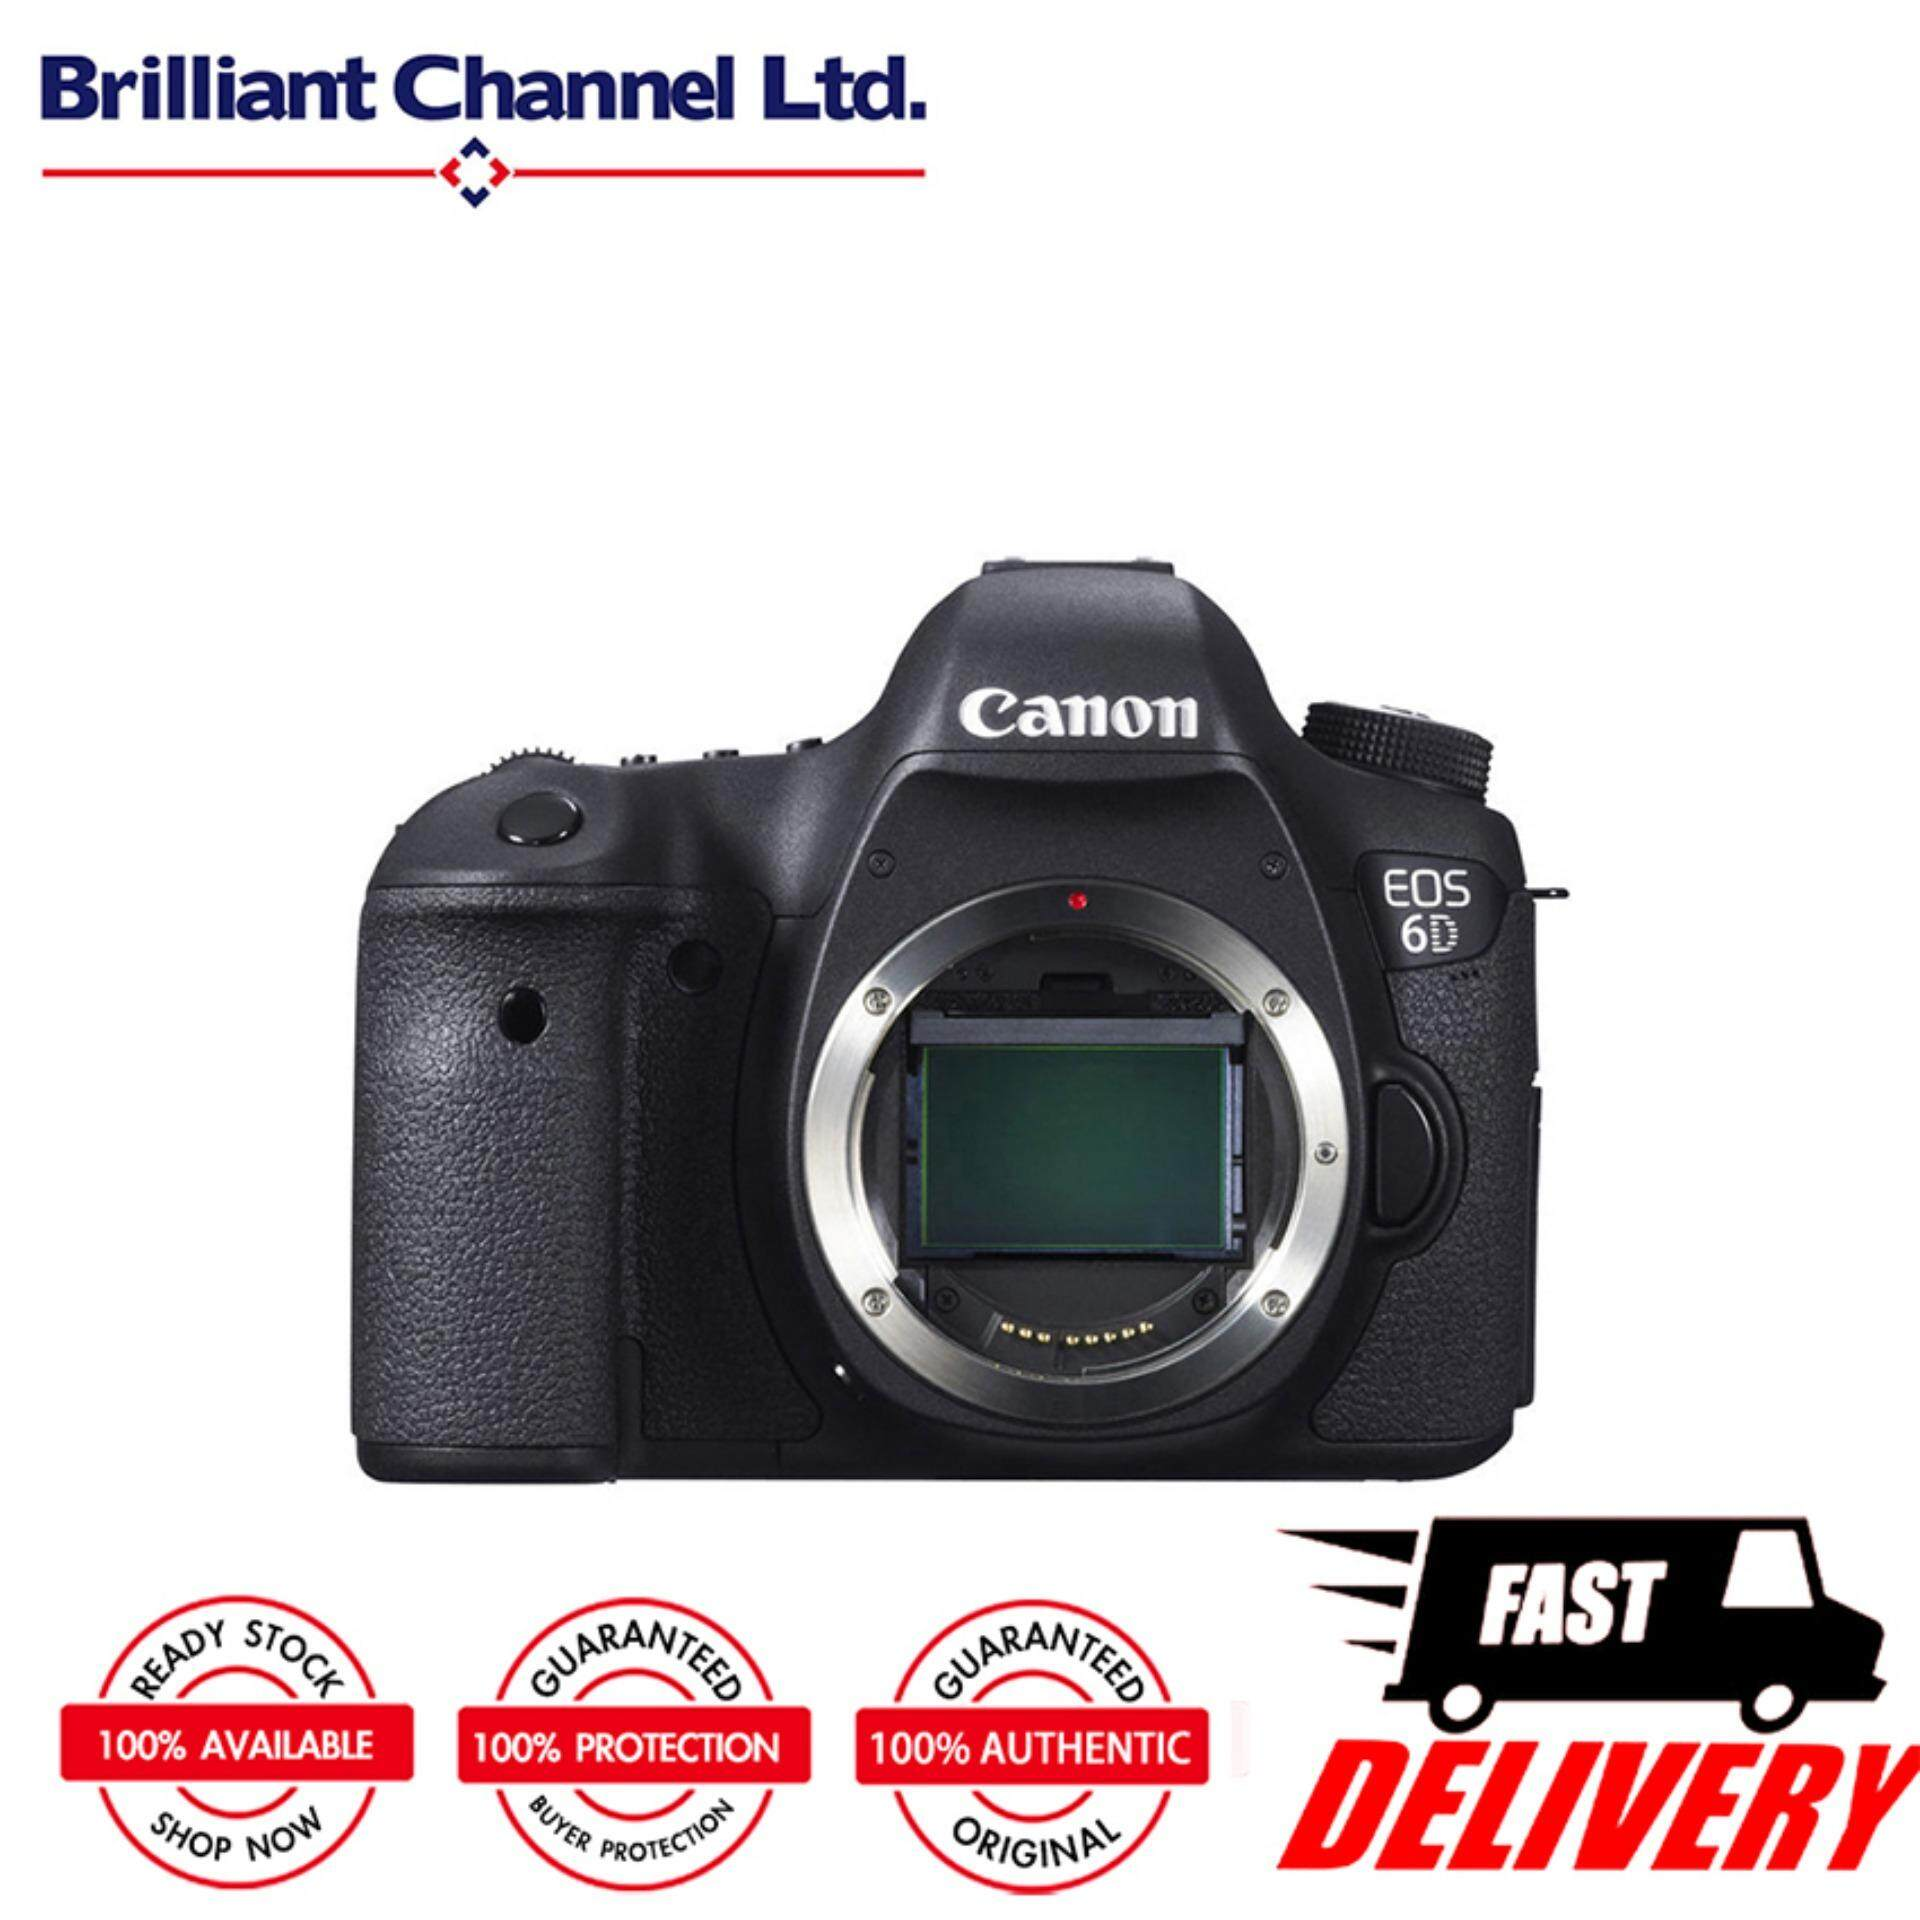 ขาย Canon Eos 6D Dslr Camera Body Intl ใหม่